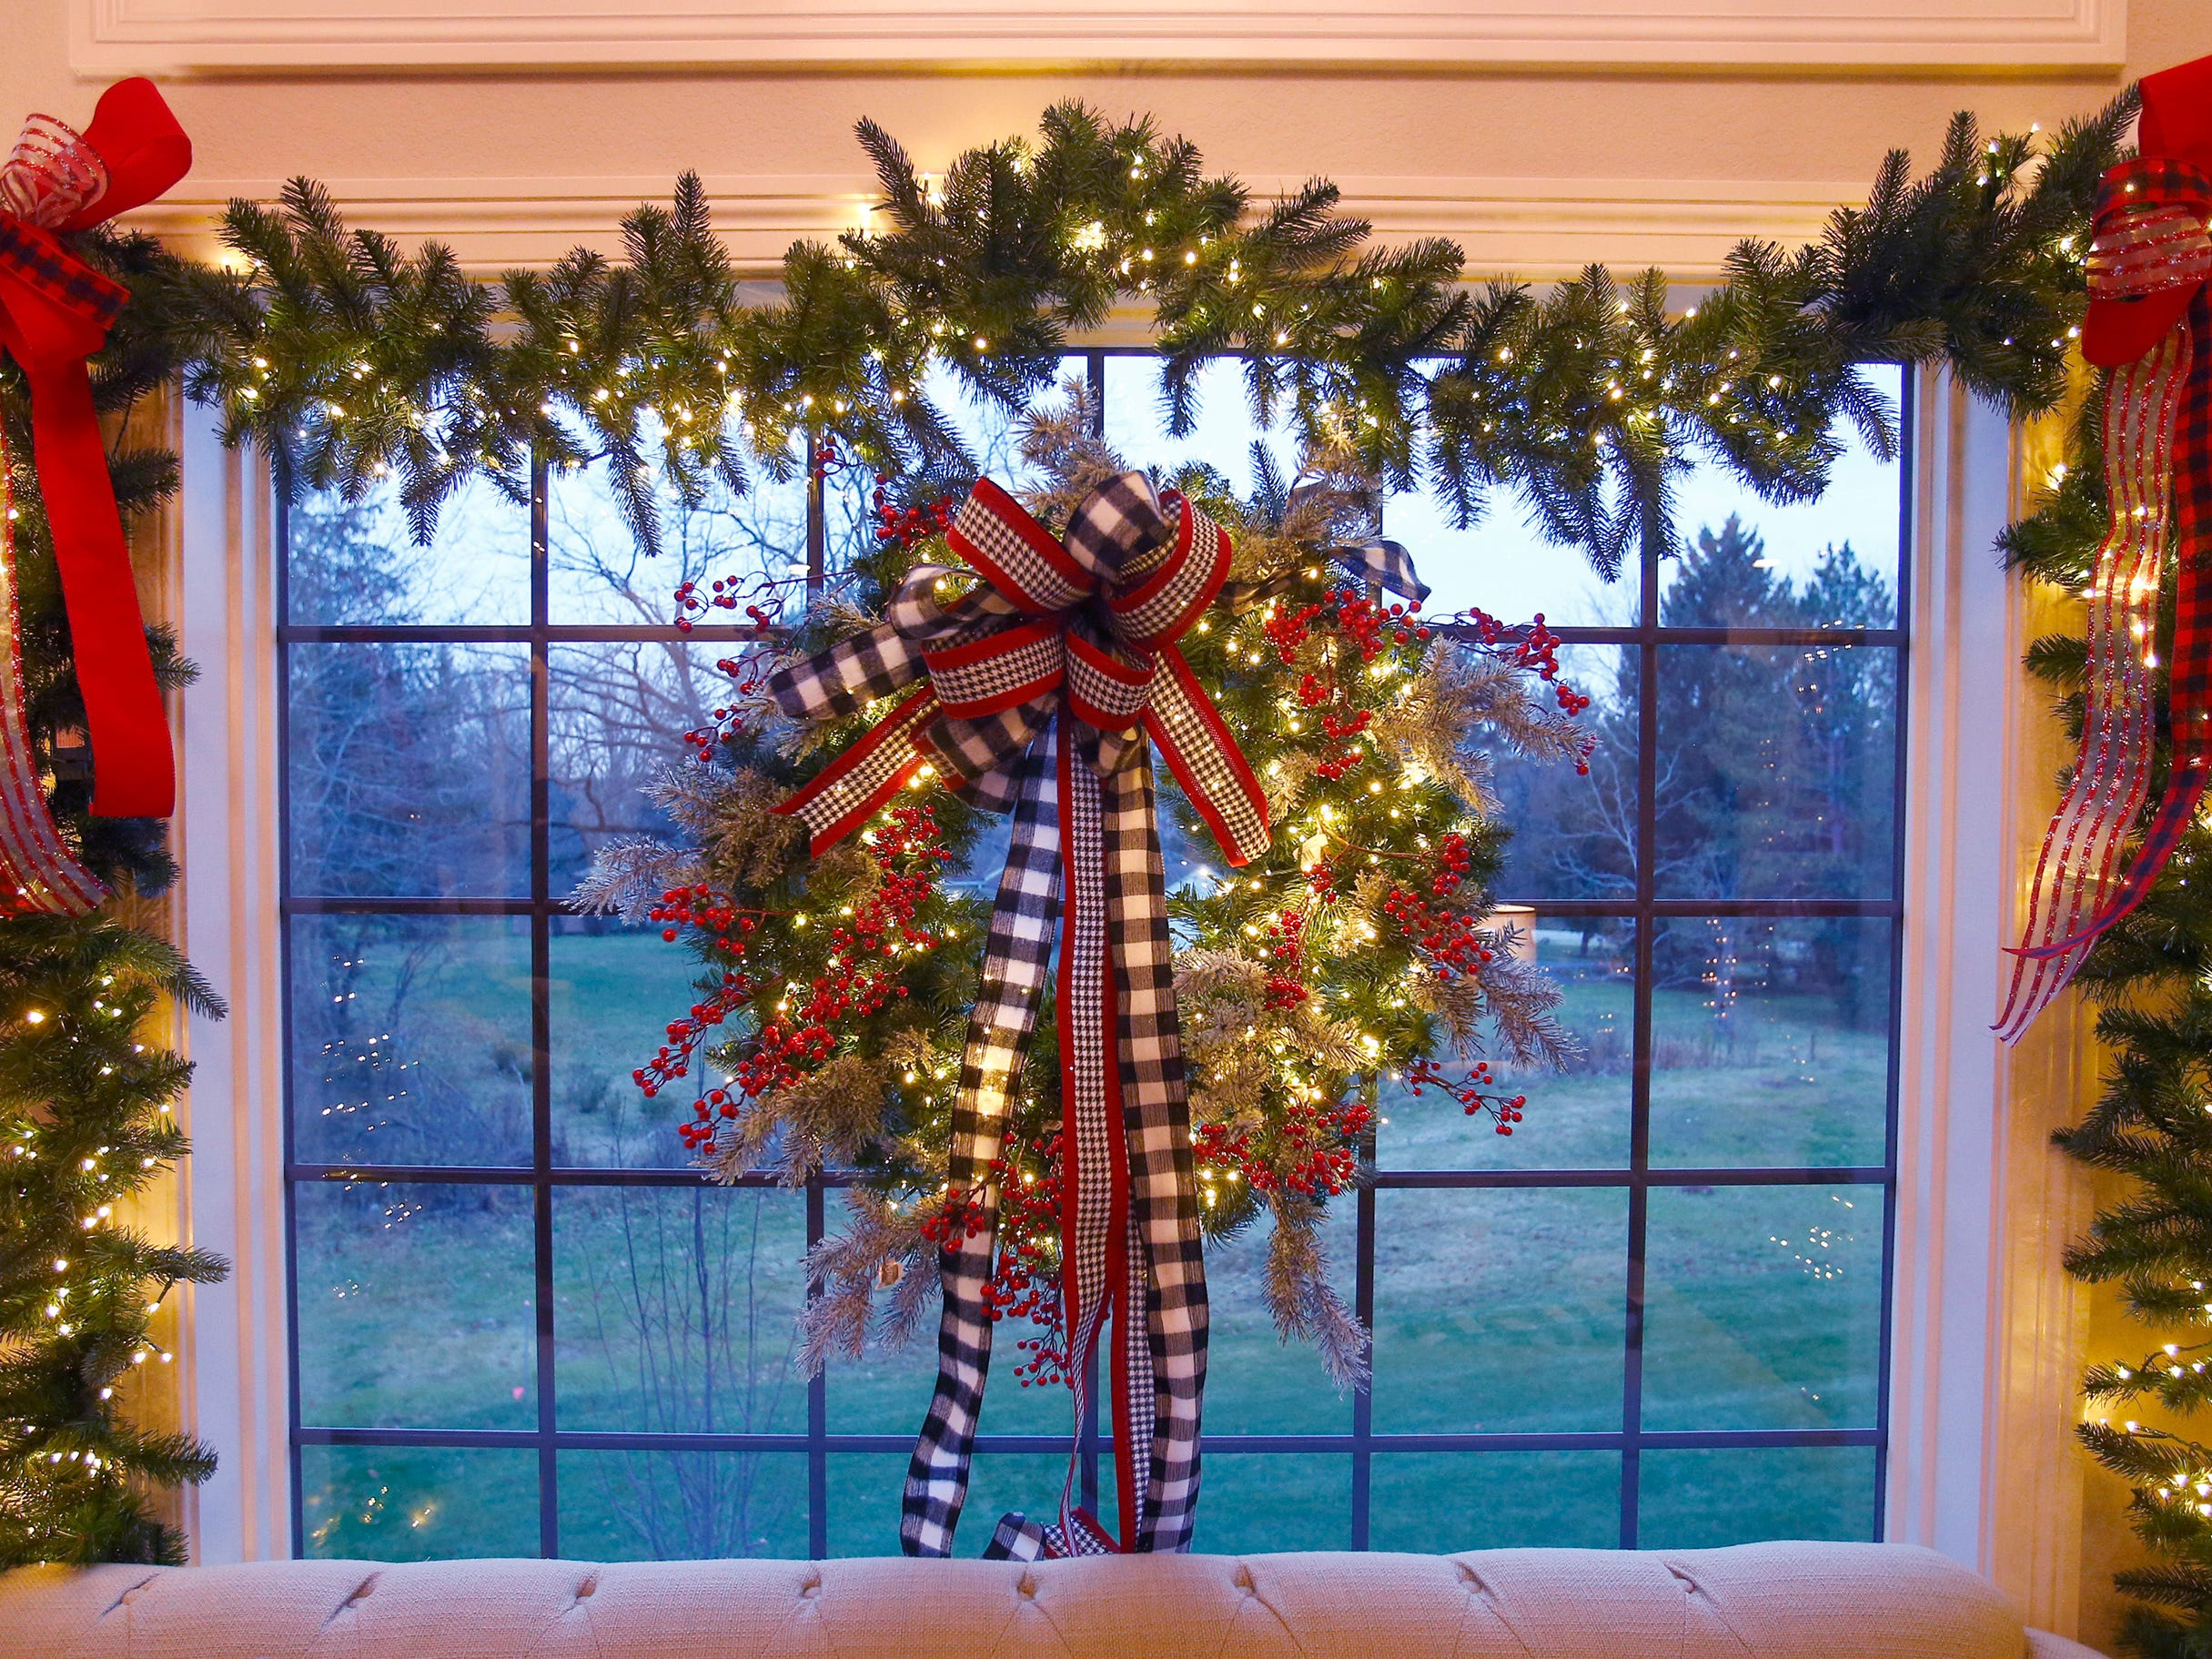 A window to the backyard is decorated for the 26th annual Christmas Fantasy House with 18 rooms decorated by more than 16 area decorators to benefit the Ronald McDonald House Charities Eastern Wisconsin. The Fantasy house will be open 10 a.m. to 8 p.m. on Nov. 9, and 10 a.m. to 6 p.m. on Nov. 10 and 11. Parking and shuttle to the House is at Ridgewood Baptist Church, 2720 Lilly Road, Brookfield. Tickets are $20 at the door.